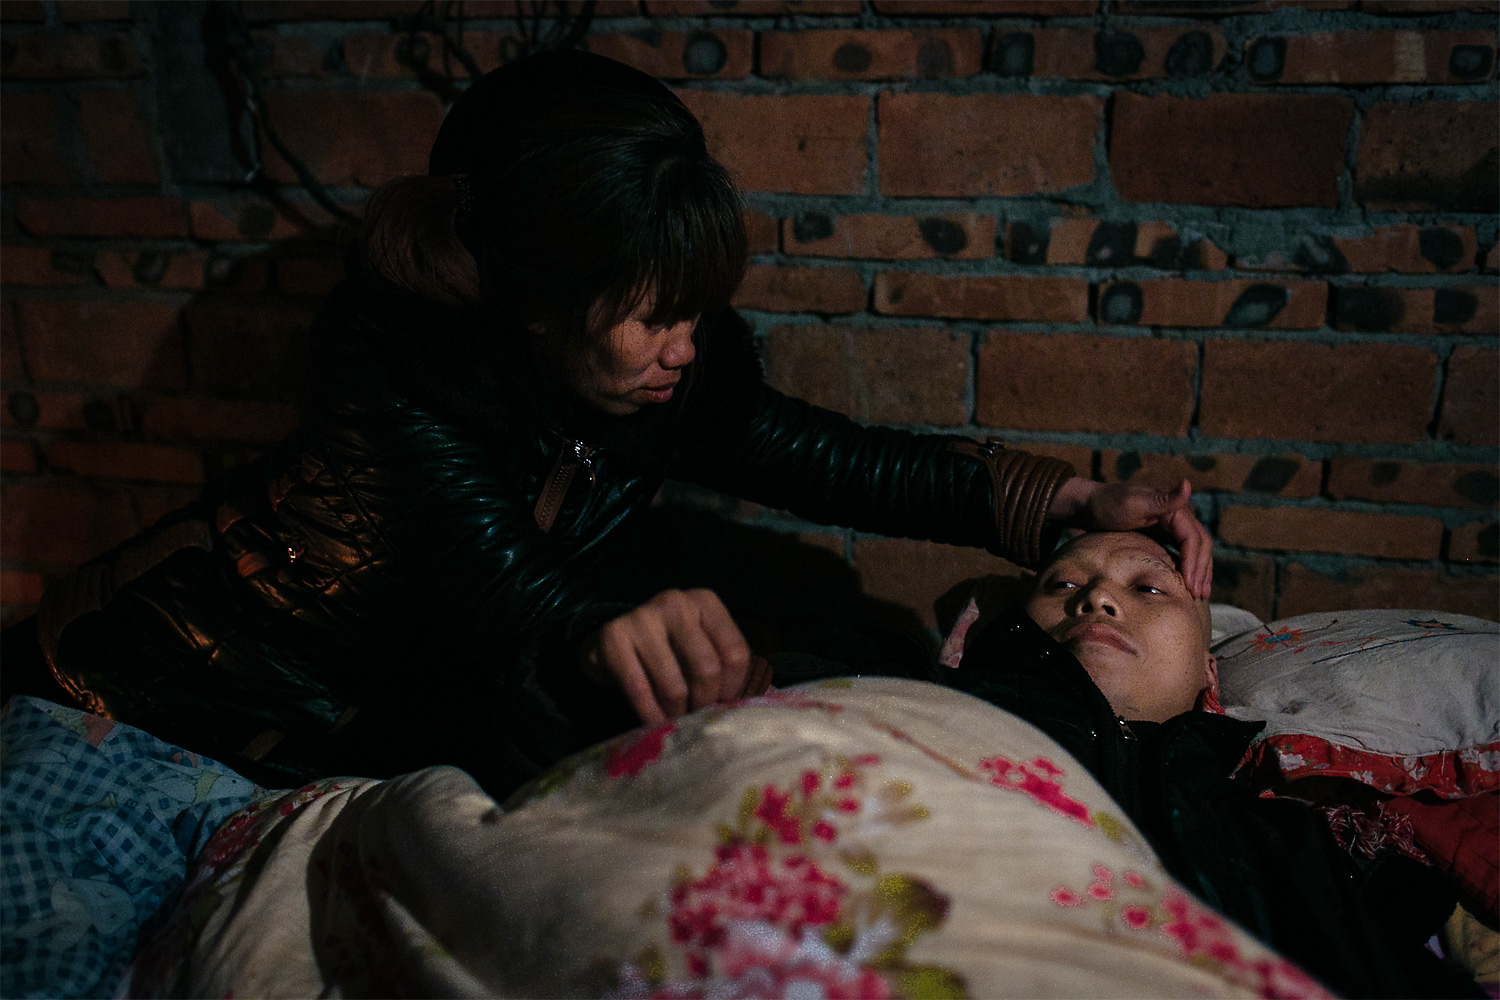 Ning Xianfang tries to comfort Li Mingjin. With no more money for treatment and unable to care for their daughters, the couple decided that the only thing left to do was to try to sell one of their daughters and hope for the best.